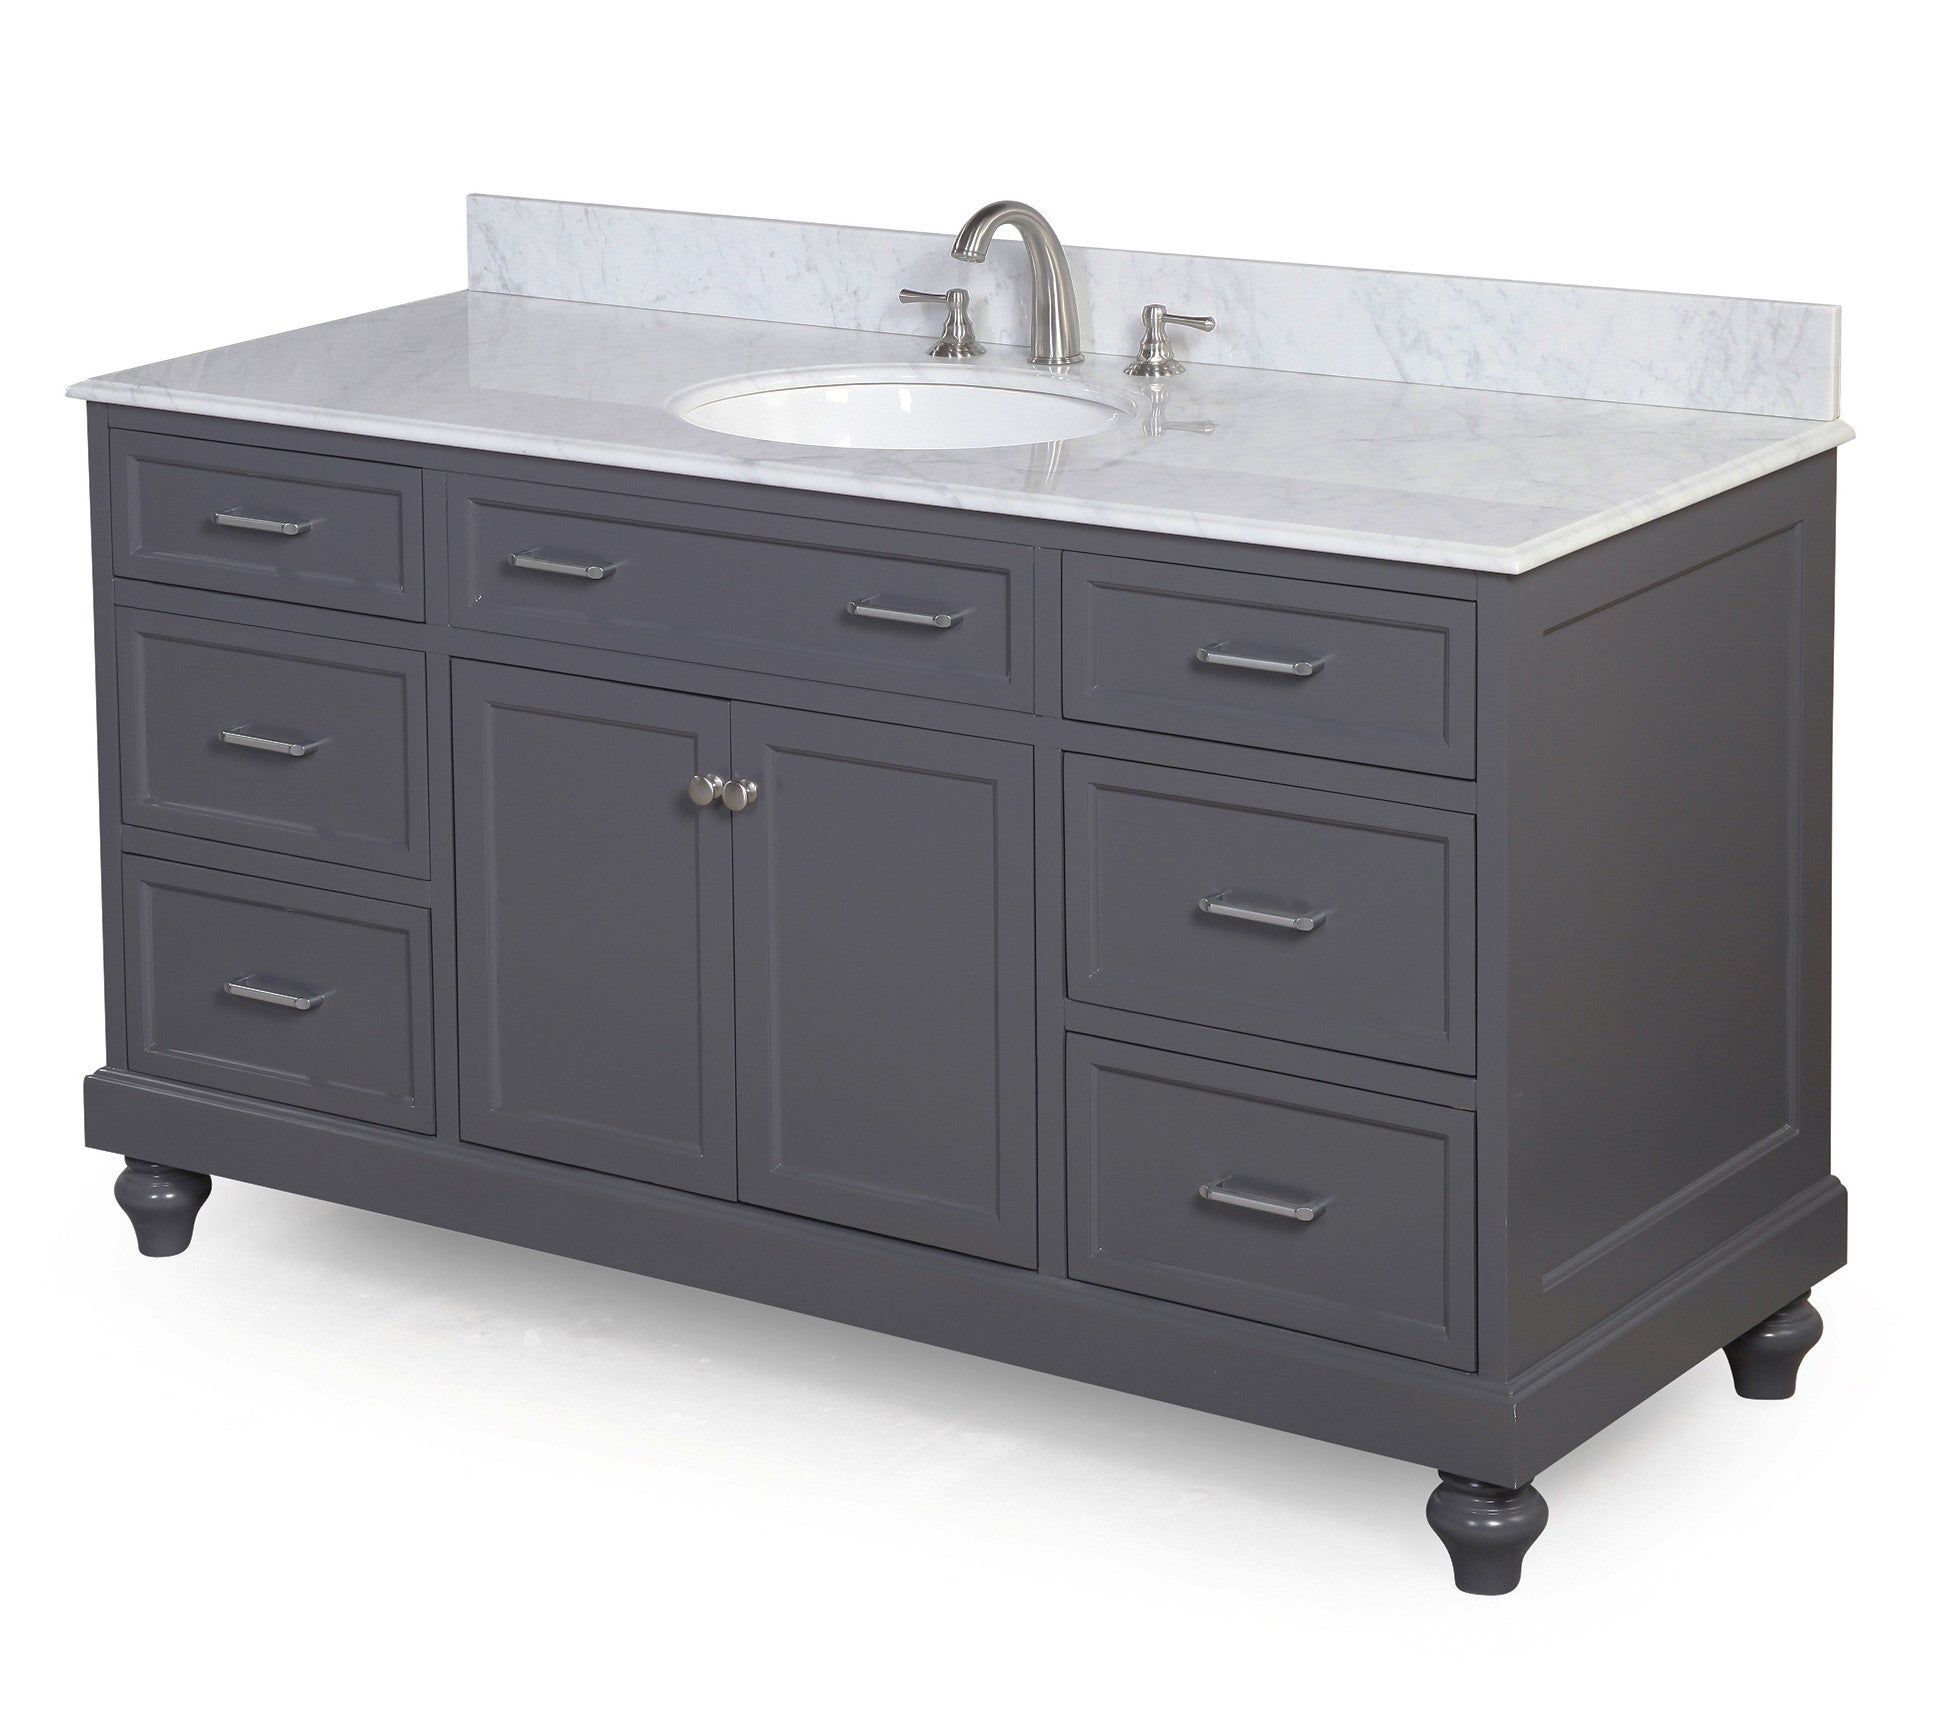 Amelia 60-inch Single (Carrara/Charcoal Gray)